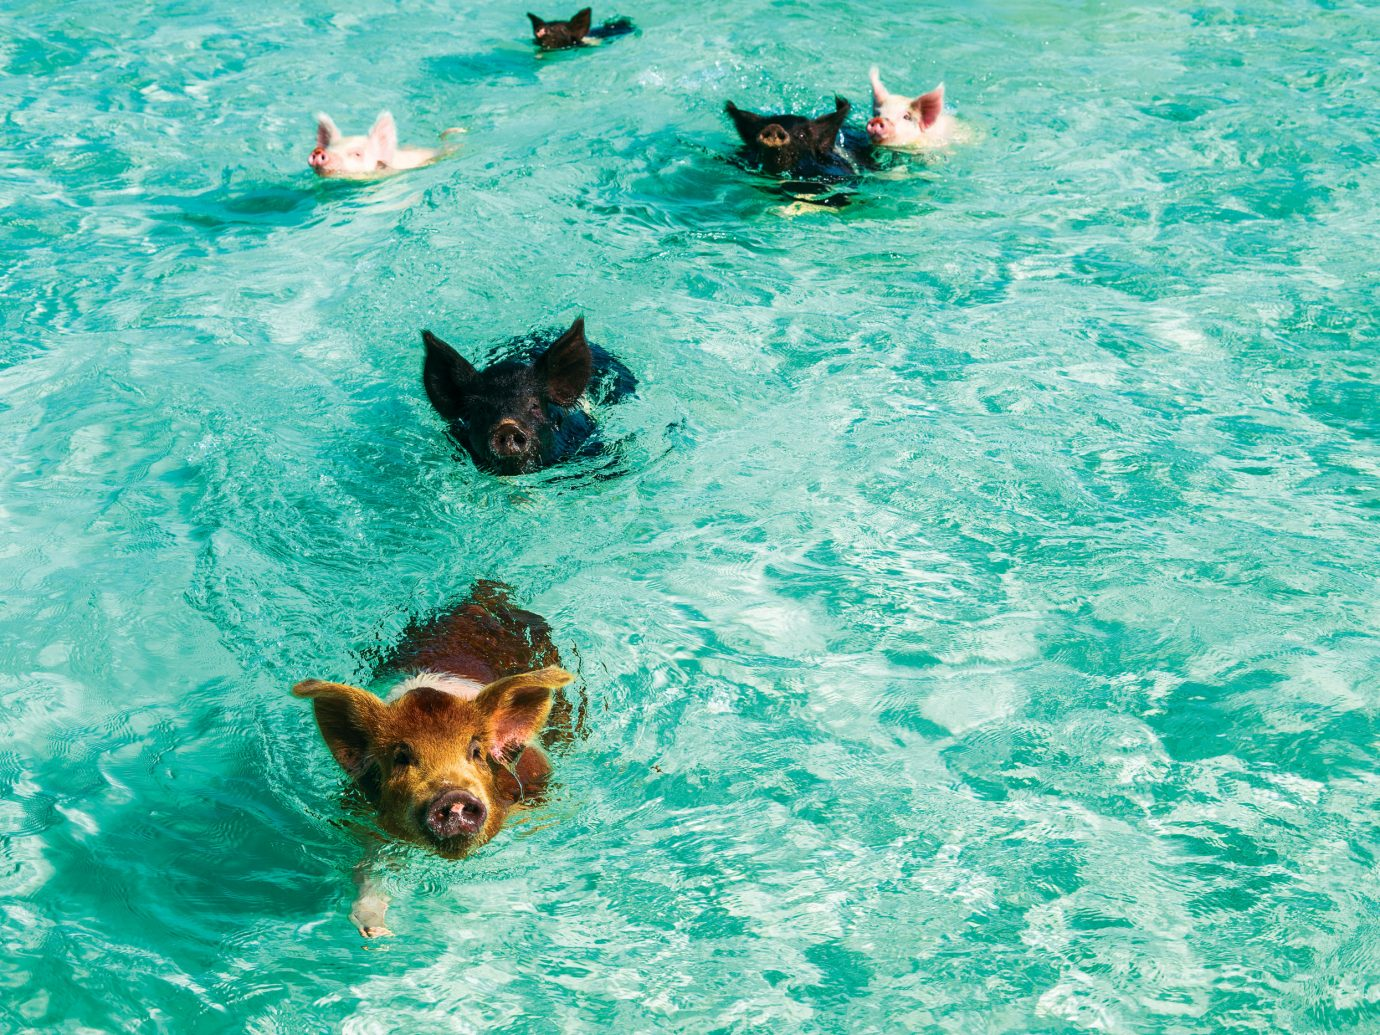 Pigs swimming in the ocean at Grand Isle Resort & Spa, Great Exuma, Bahamas